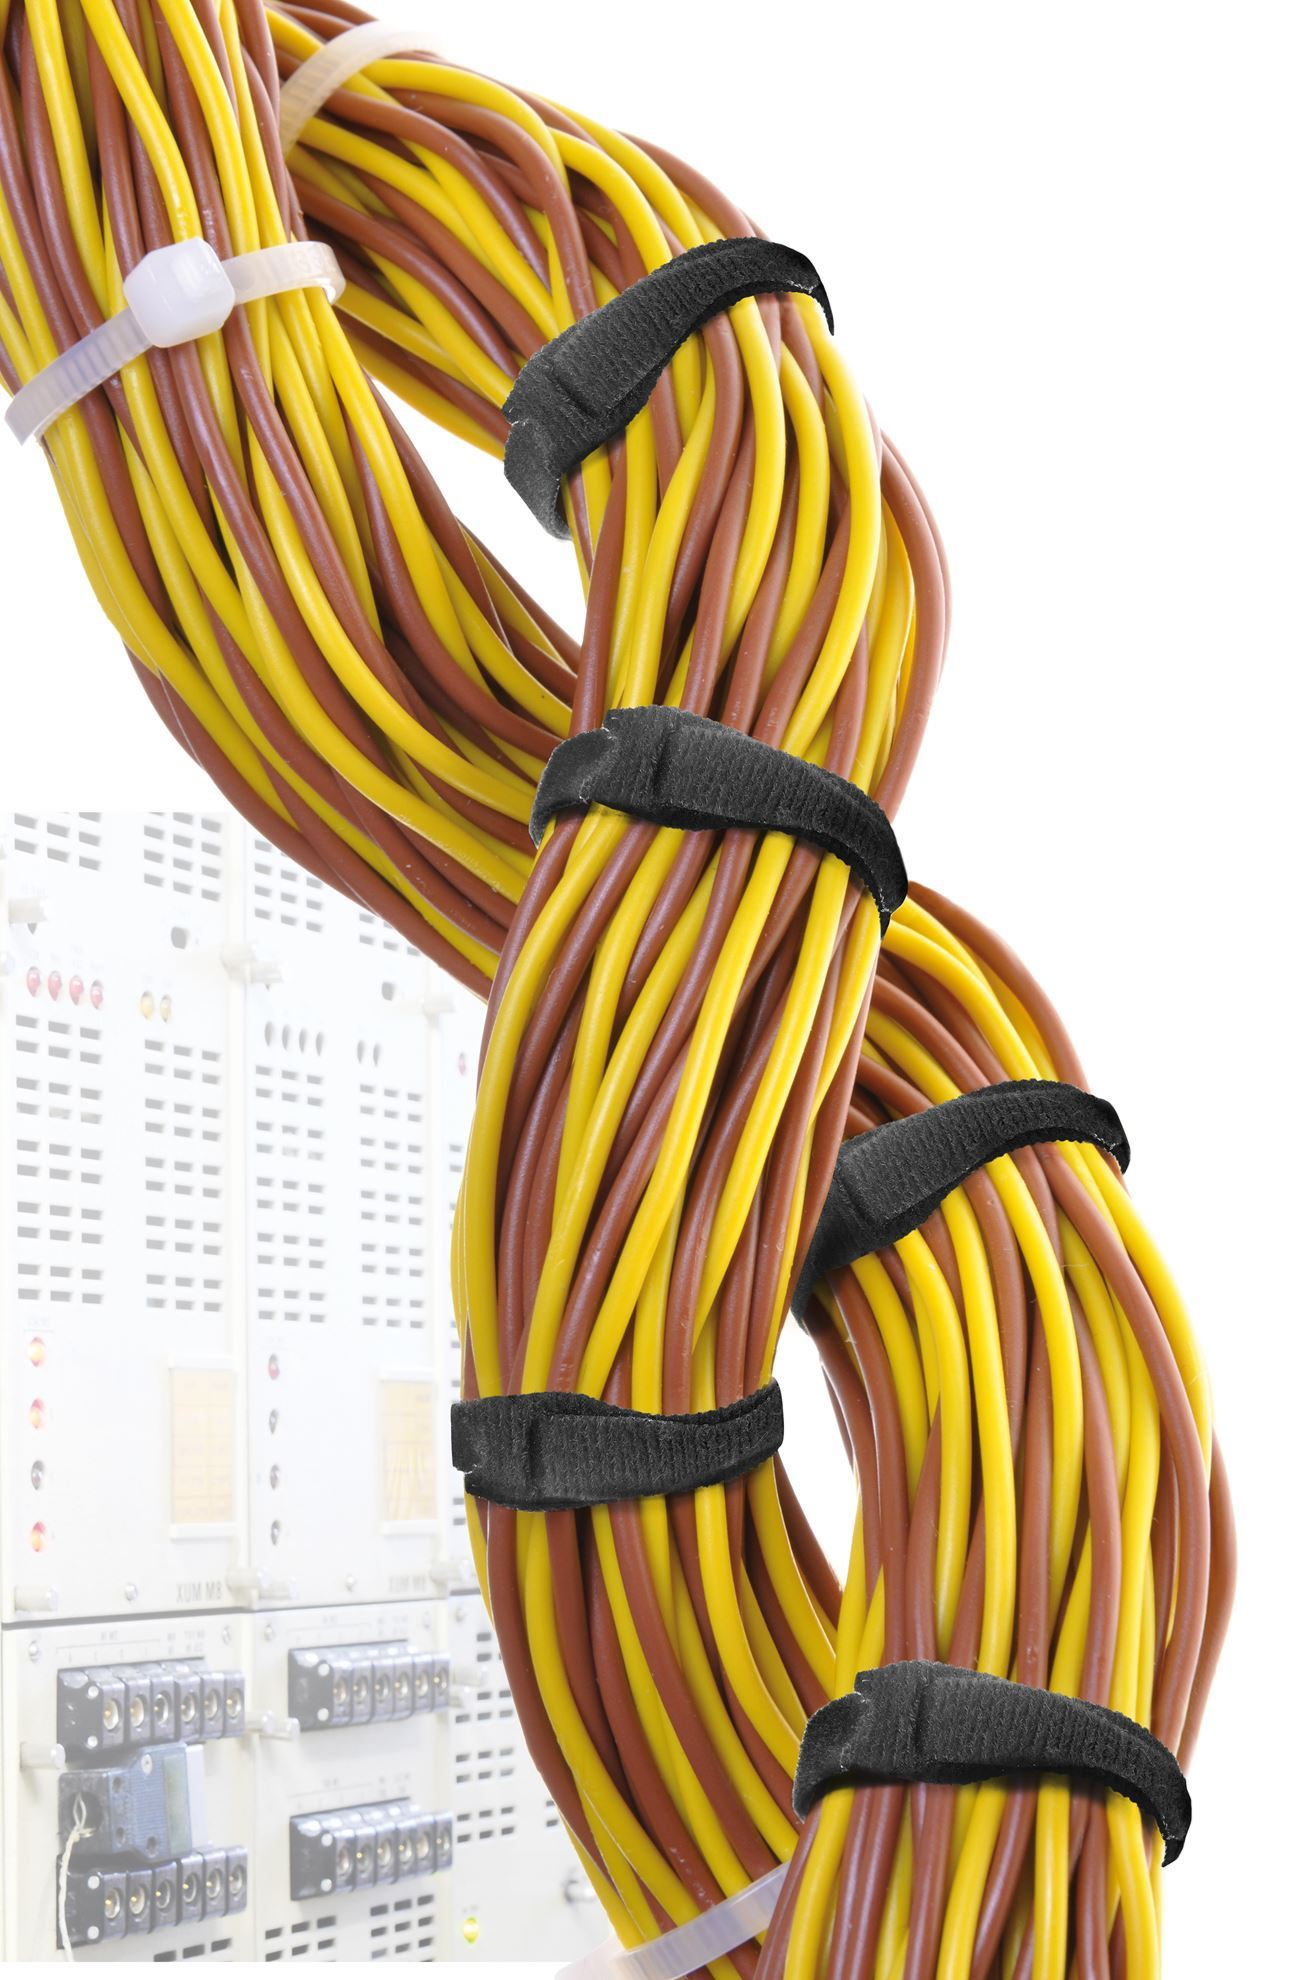 Picture of VELCRO ONE-WRAP 12.5mm Continuous 22.8m Fire Retardant Cable Roll.